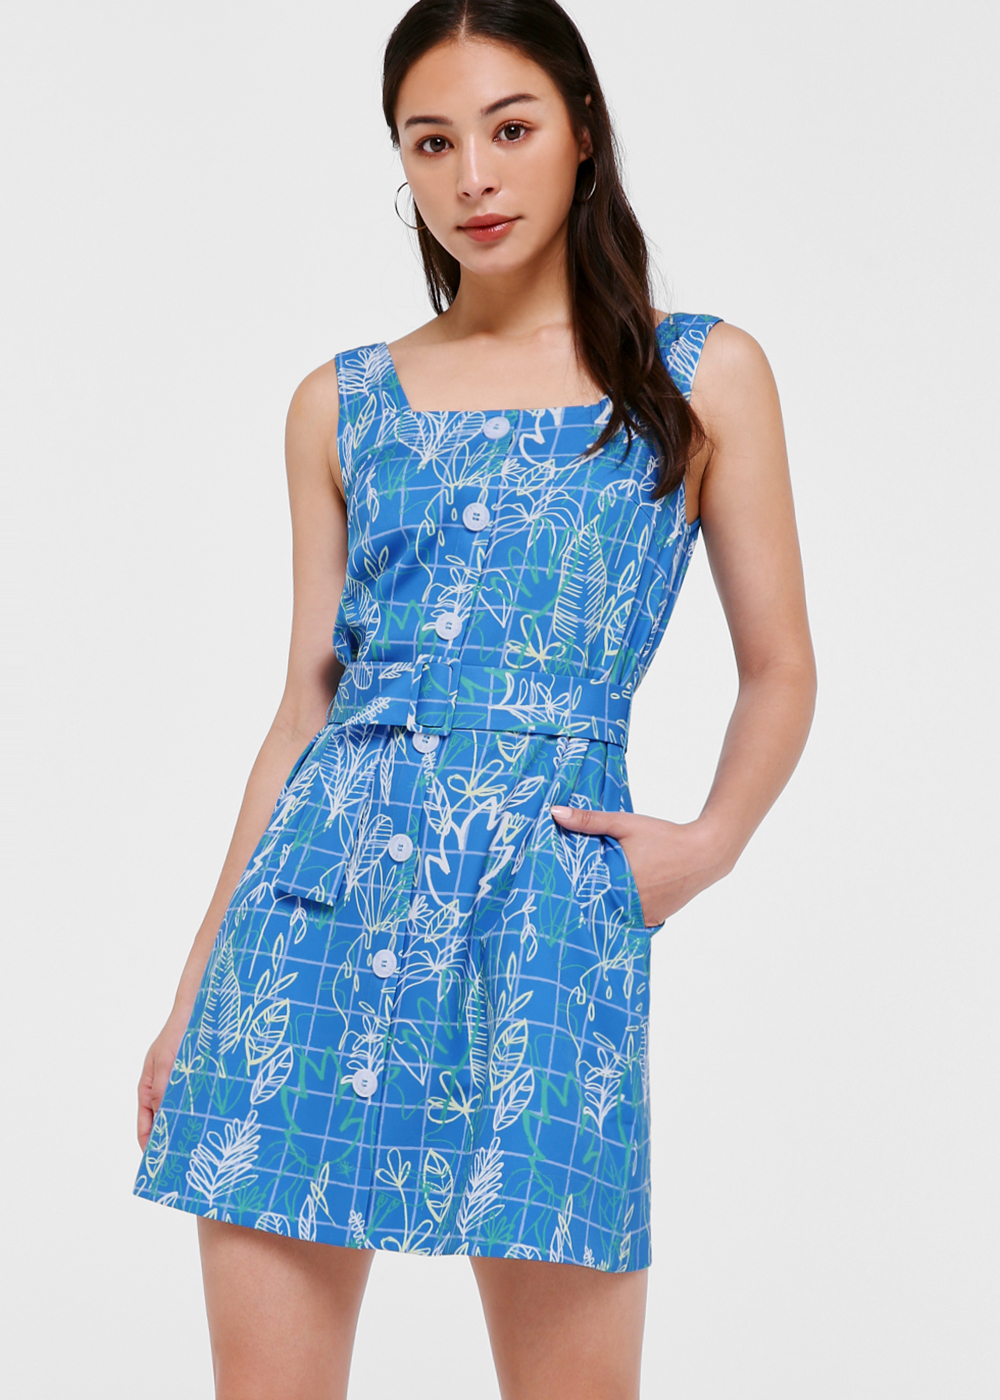 Elen Belted Shift Dress in Cerulean Leaves